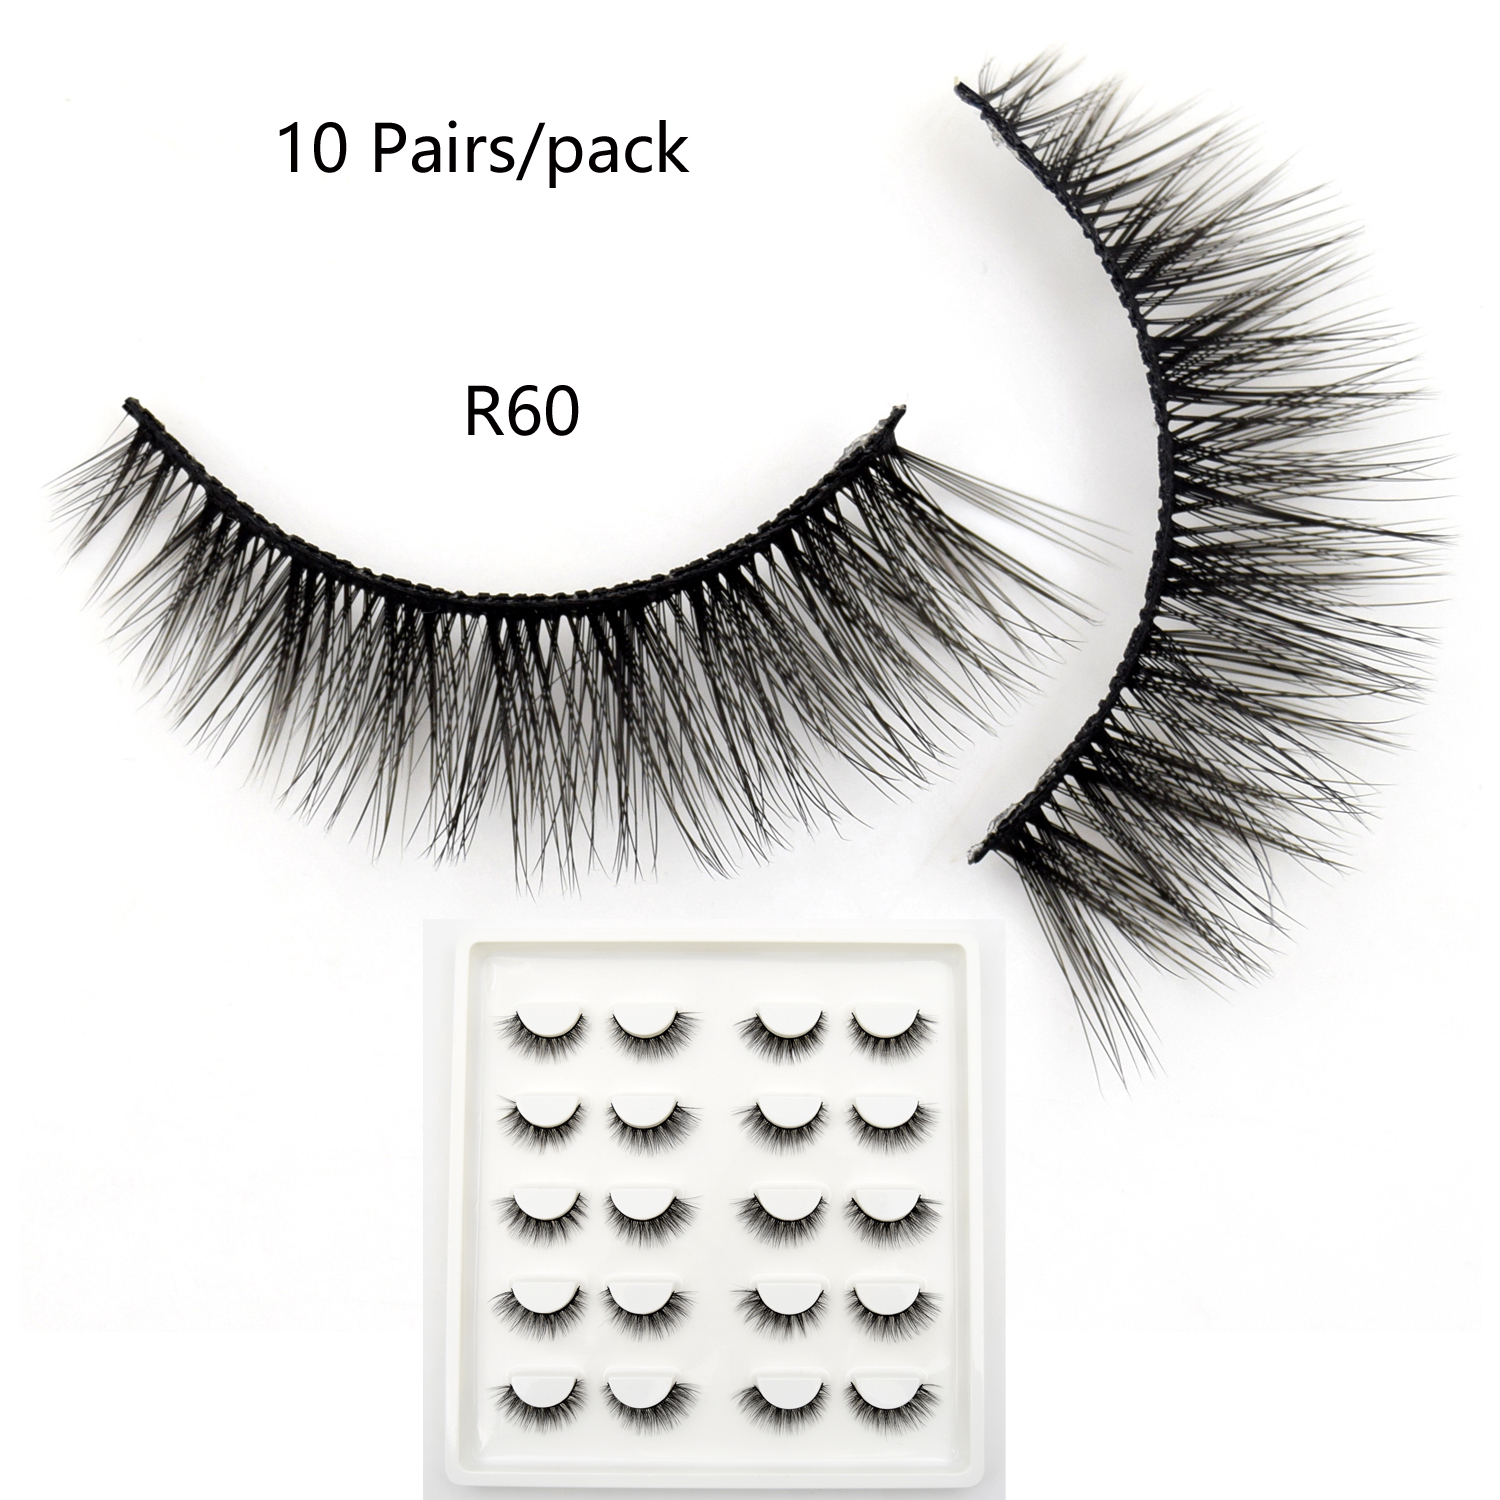 10 Pairs Faux Mink Lashes Bulk Natural Lashes Dramatic Lashes 3D False Eyelashes Handmade Full Strip Lashes R60 Makeup Eyelashes